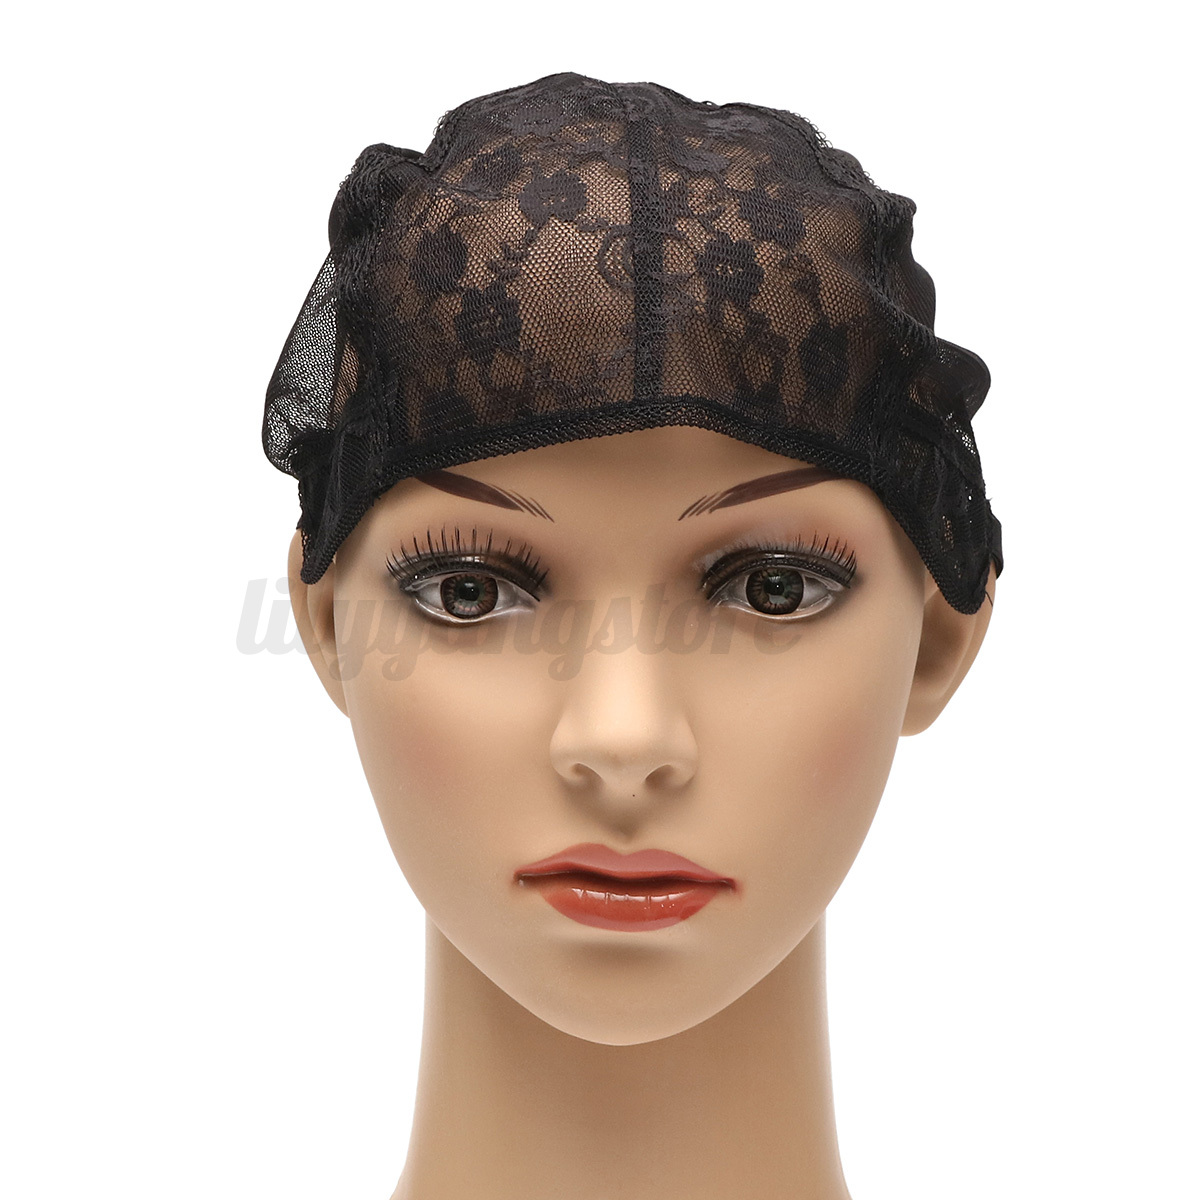 Wig Lace Front Caps For Making Wigs Adjustable Straps